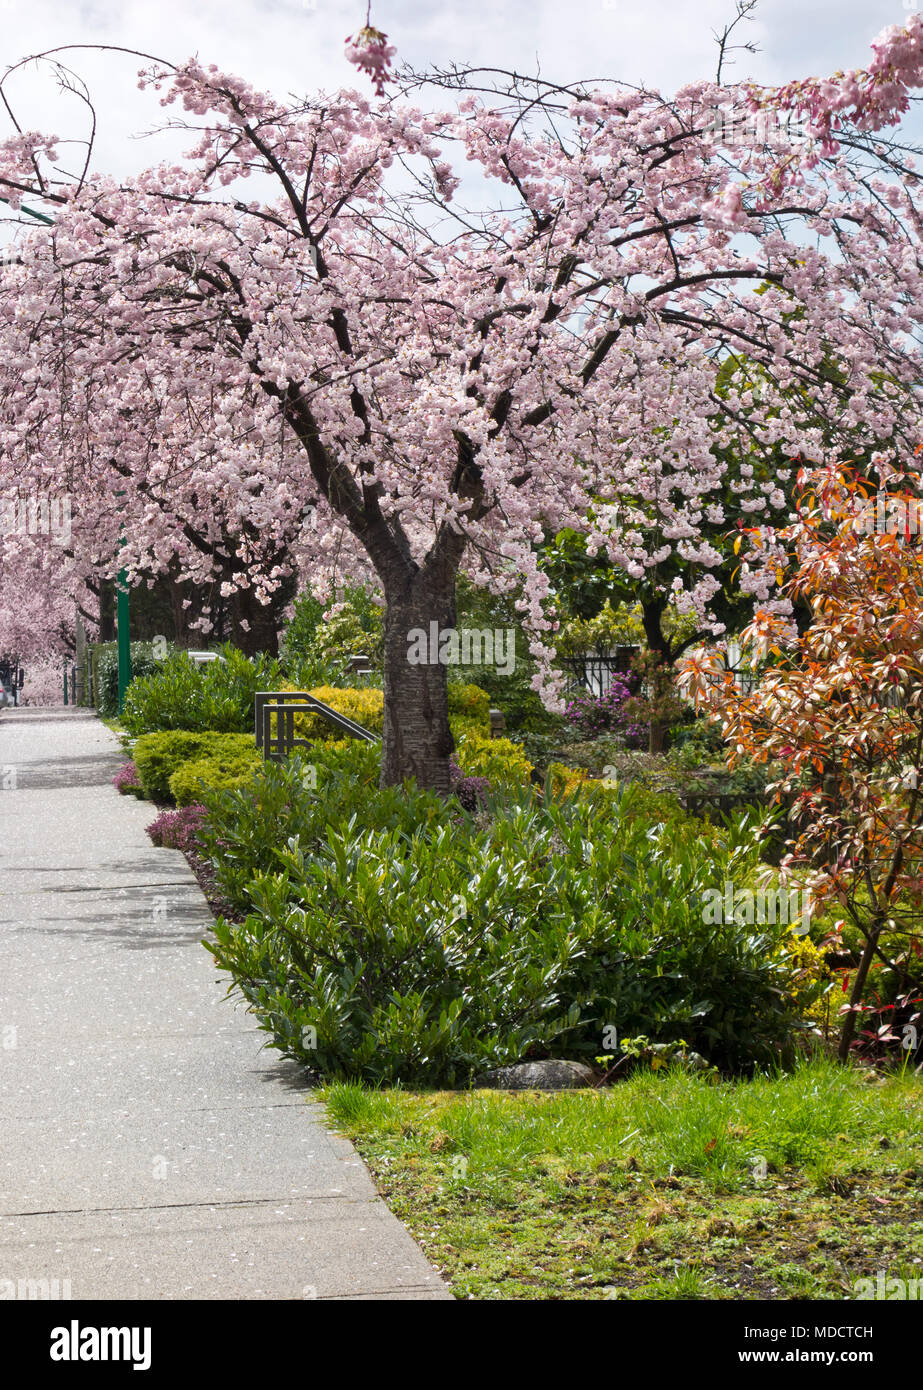 Flowering Yoshino Cherry Tree Akebono Prunus Yedoensis In A Greater Vancouver Neighbourhood Cherry Blossoms In The Spring In Metro Vancouver Stock Photo Alamy